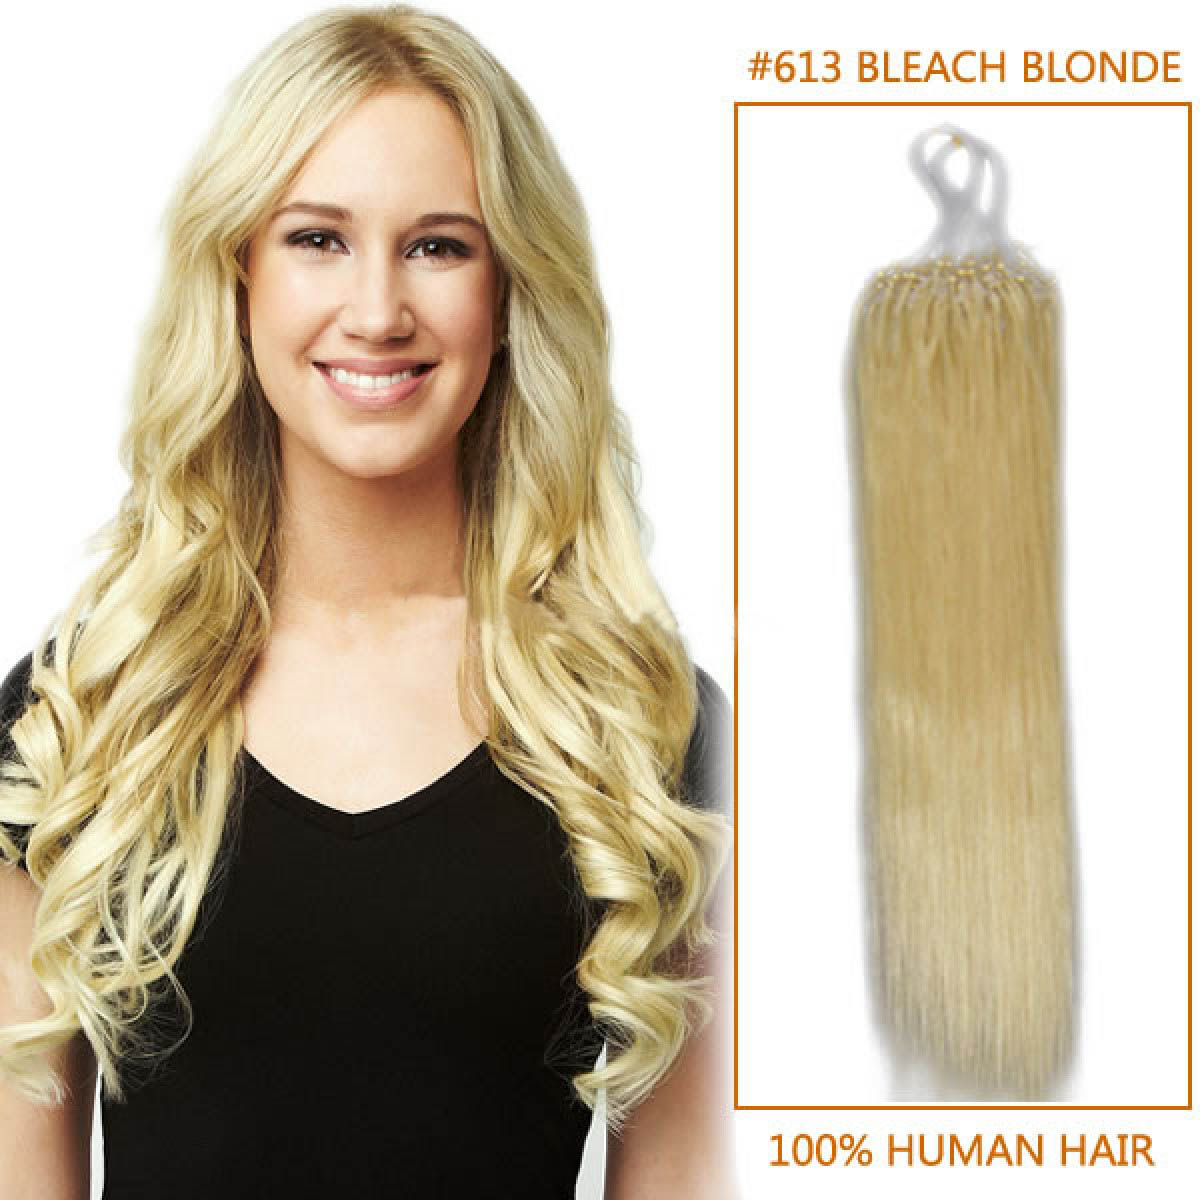 18 Inch 613 Bleach Blonde Micro Loop Human Hair